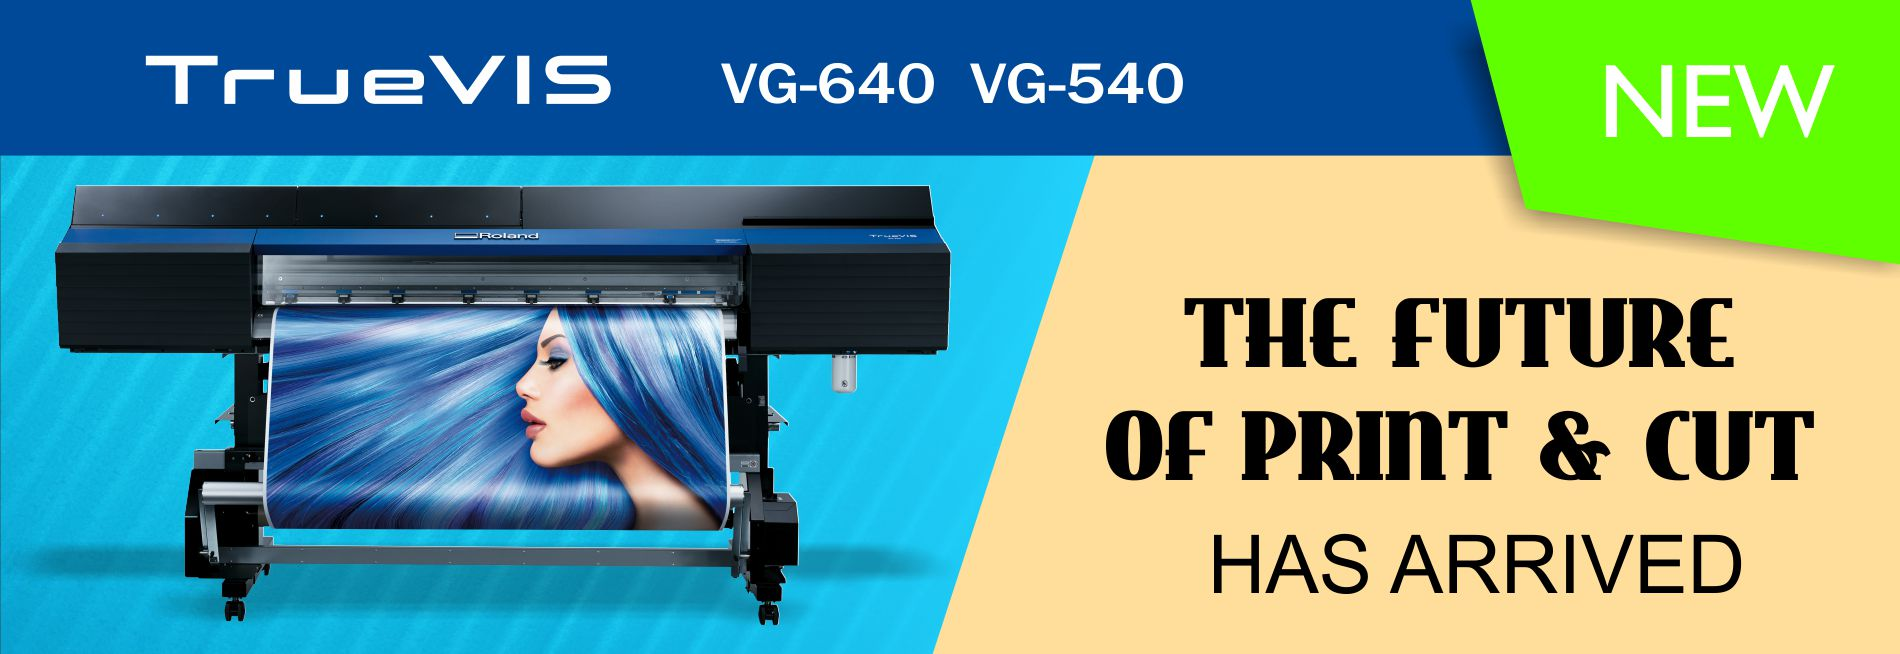 The future of print & cut has arrived